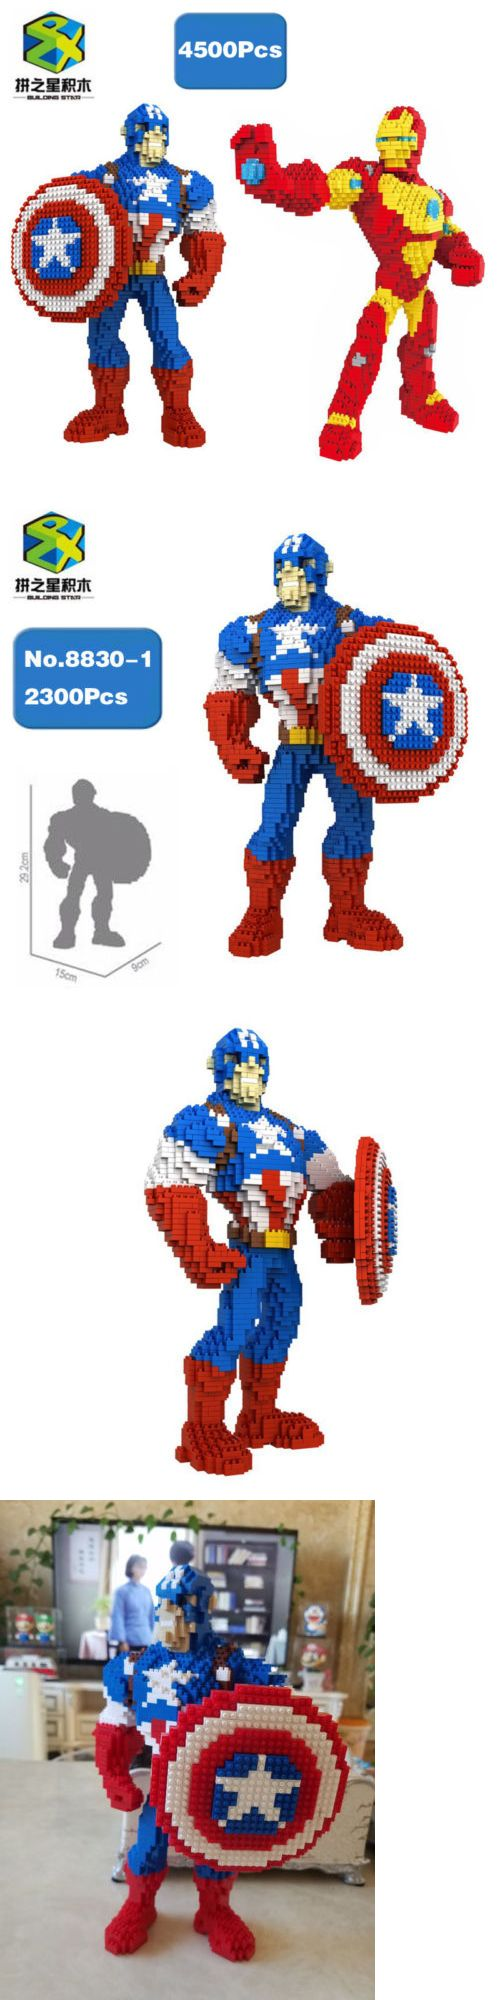 BS Marvel Avengers Captain America Iron Man Mini Building Nano Blocks Toy 2pcs